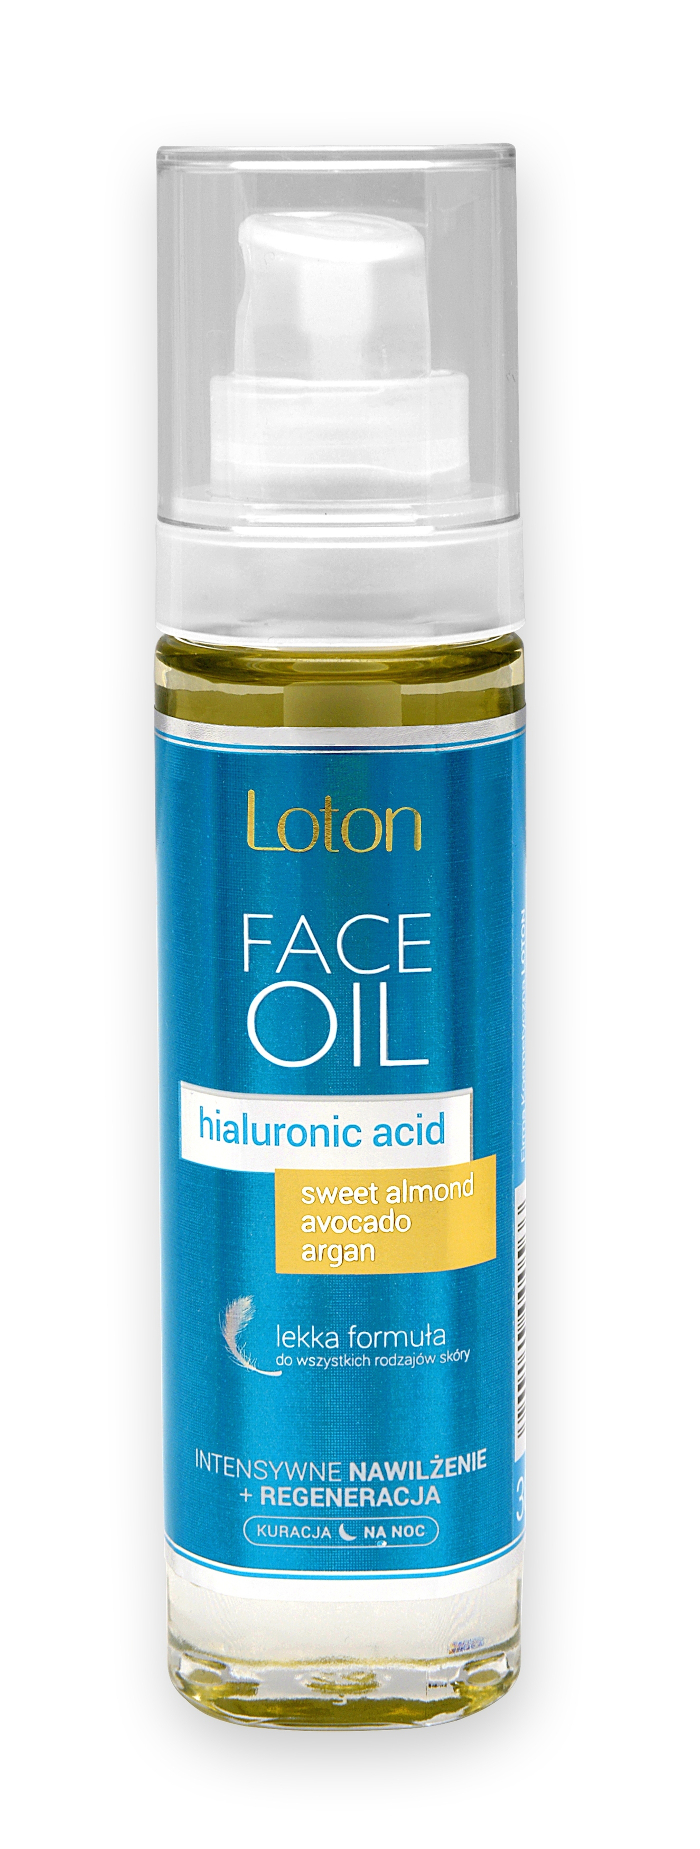 Loton - Face Oil Hialuronic Acid